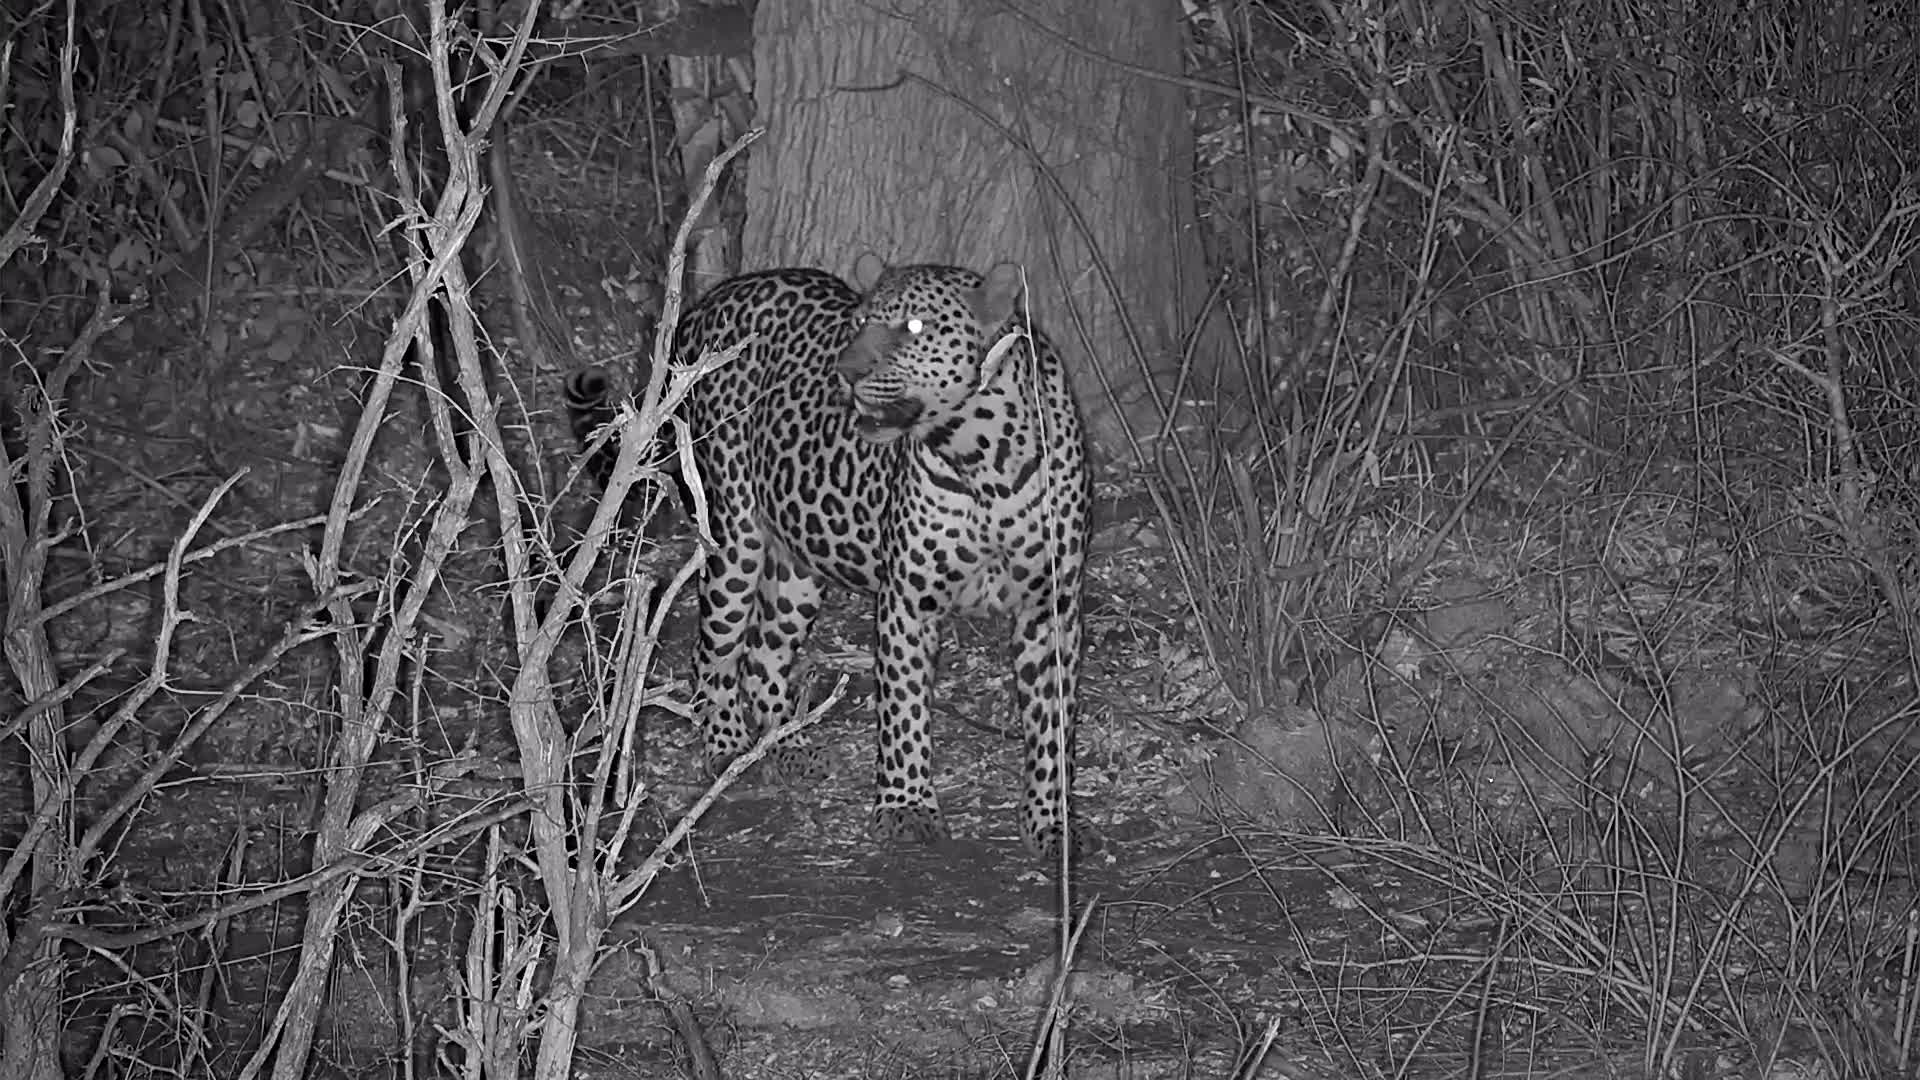 VIDEO:Short visit by a Leopard nearby